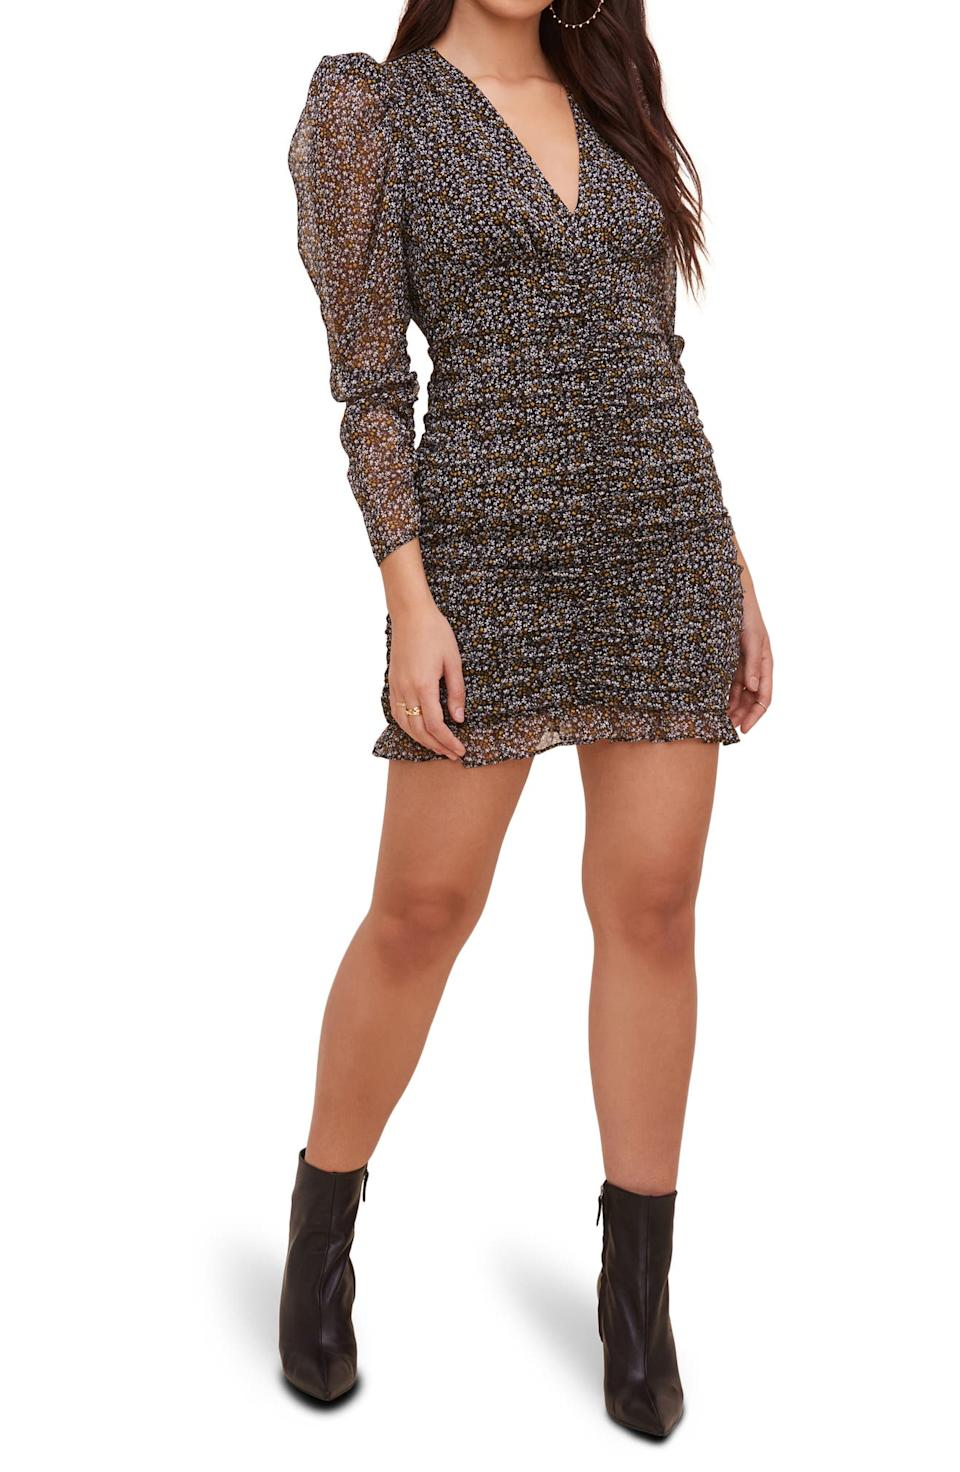 ASTR the Label Ruched Long Sleeve Minidress. Image via Nordstrom.